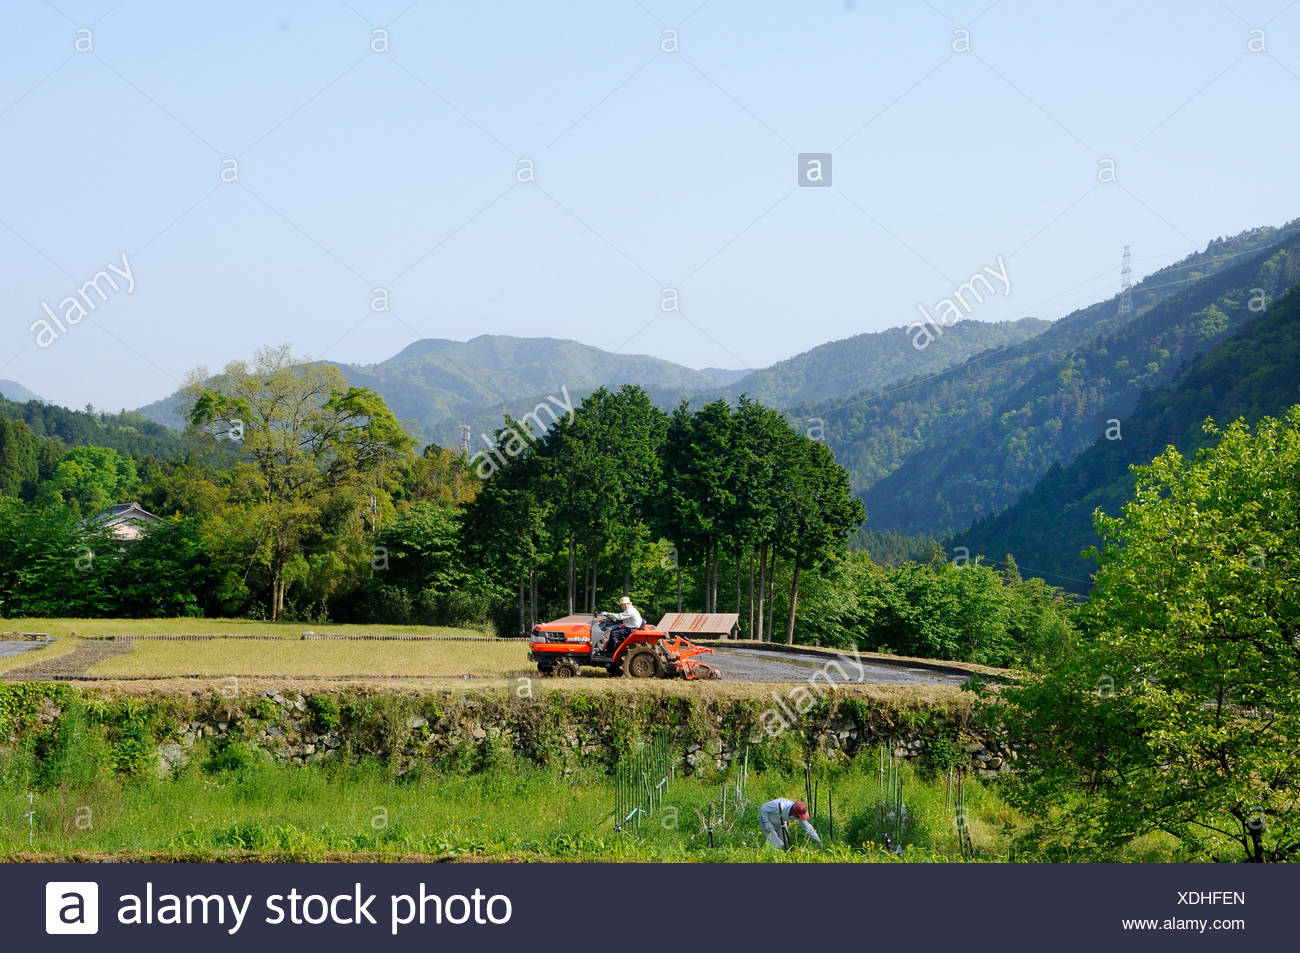 Rice farmer mulching his rice paddy on a terrace, Ohara, Japan, Asia - Stock Image